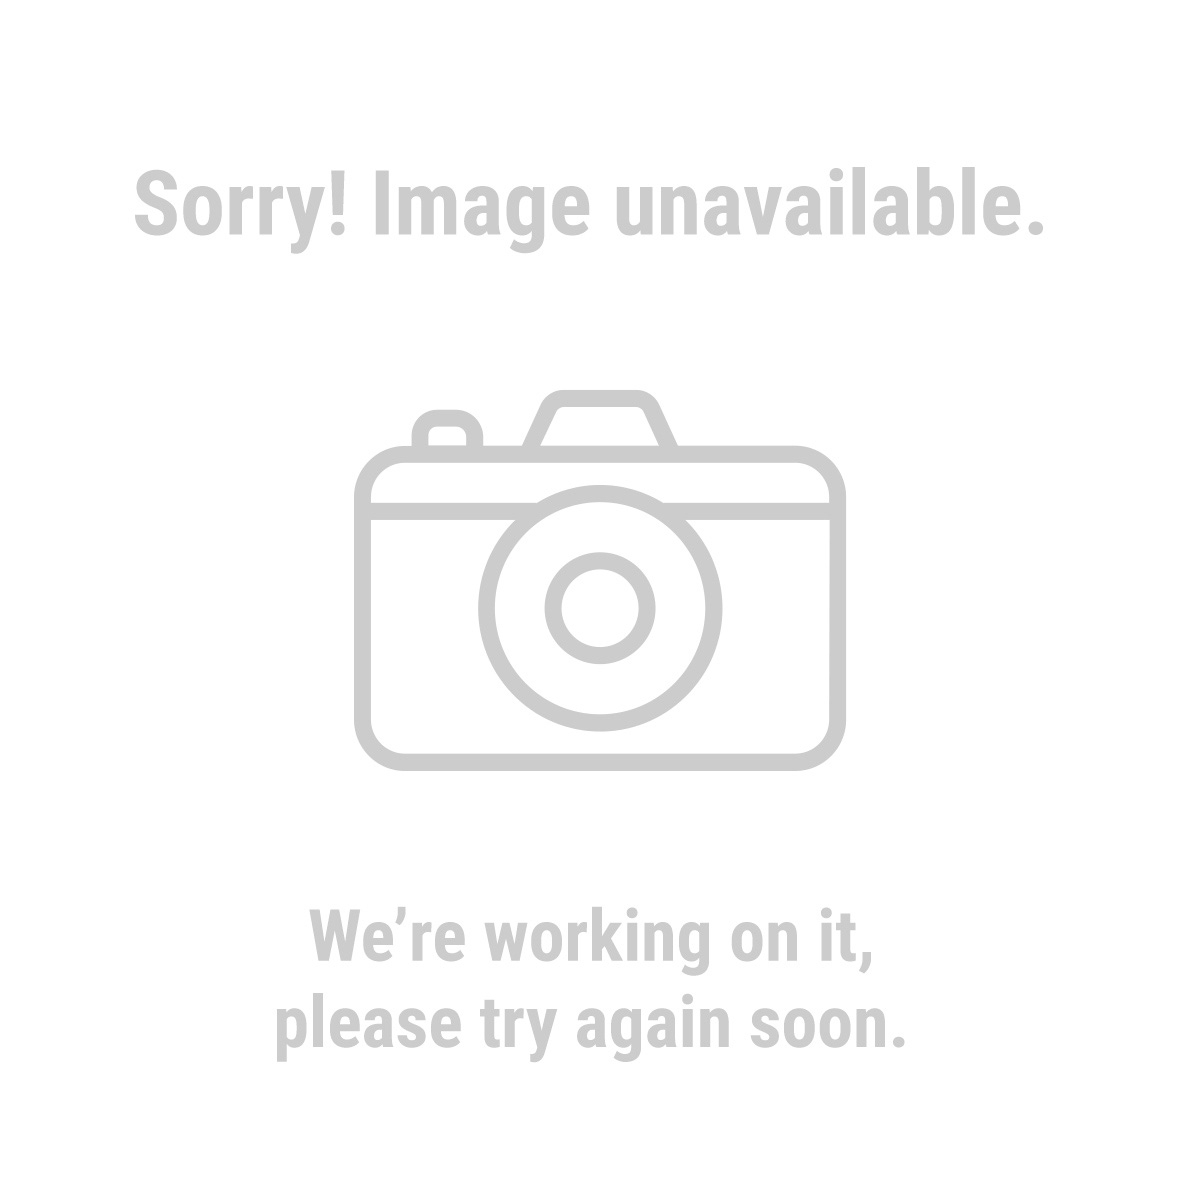 Vanguard 62924 50 ft. x 14 Gauge Indoor/Outdoor Extension Cord